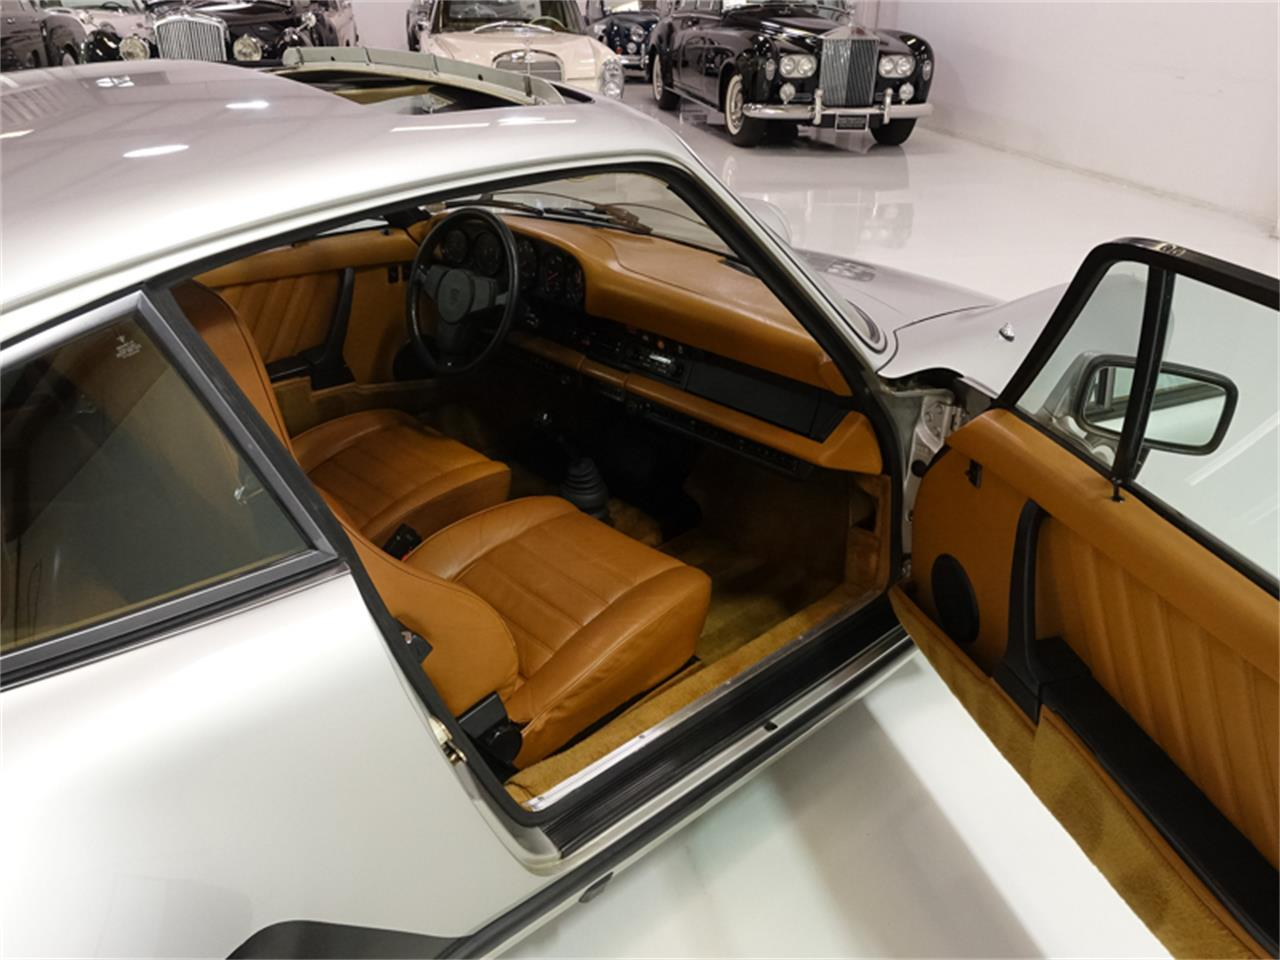 Large Picture of 1976 930 Turbo located in Missouri - $229,900.00 Offered by Daniel Schmitt & Co. - FXKC